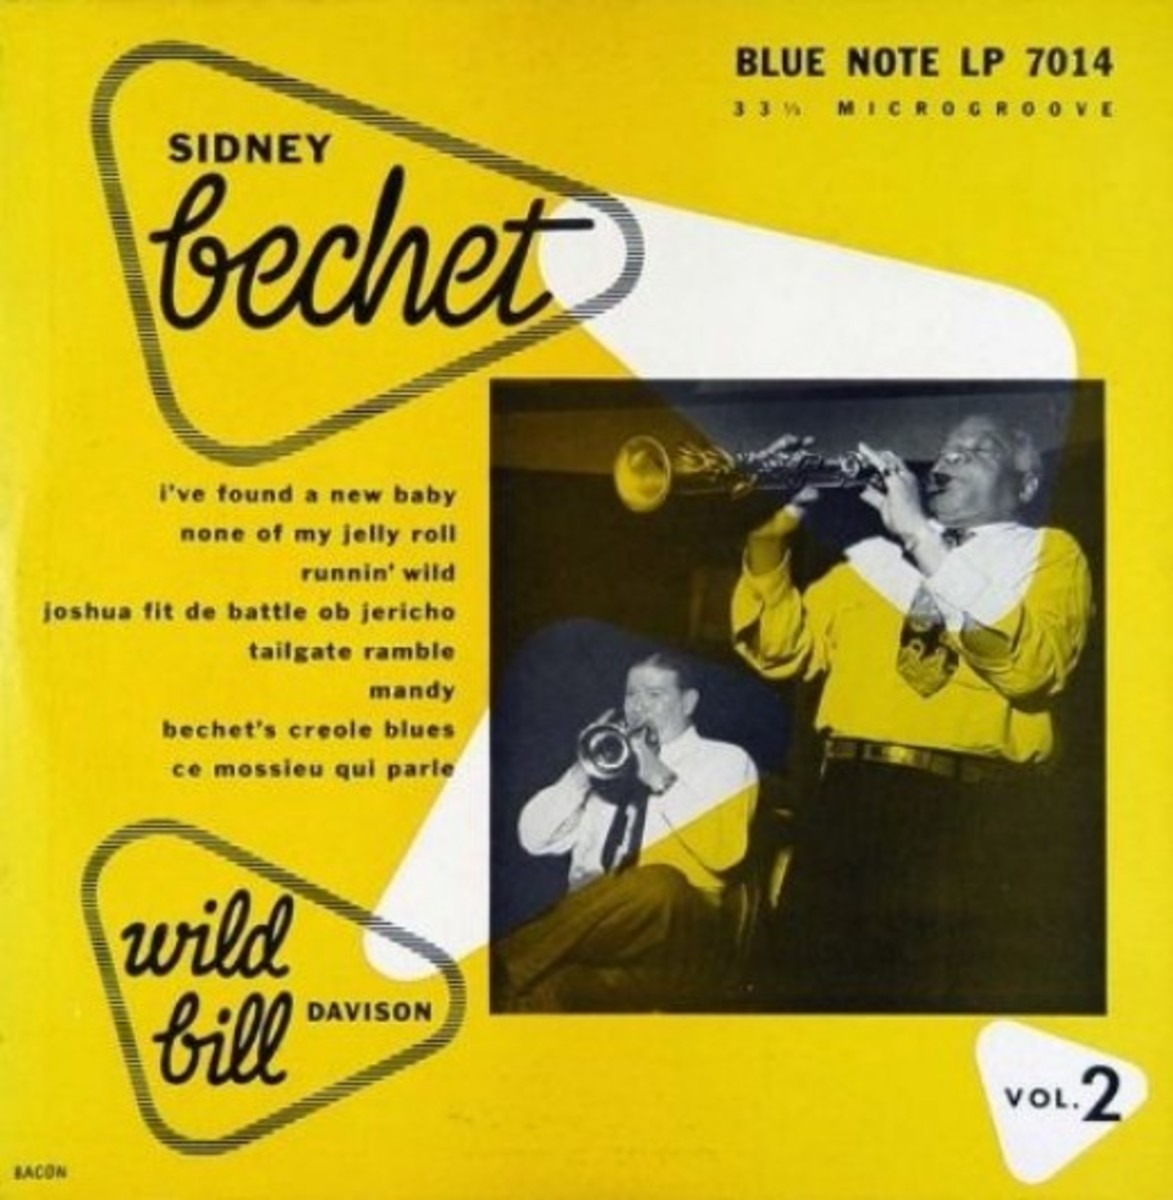 "Sidney Bechet Wild Bill Davison, vol 2 BLP 7014 10"" LP Vinyl Microgroove Record (1951) Album Cover Design by Paul Bacon Photo by Francis Wolff"